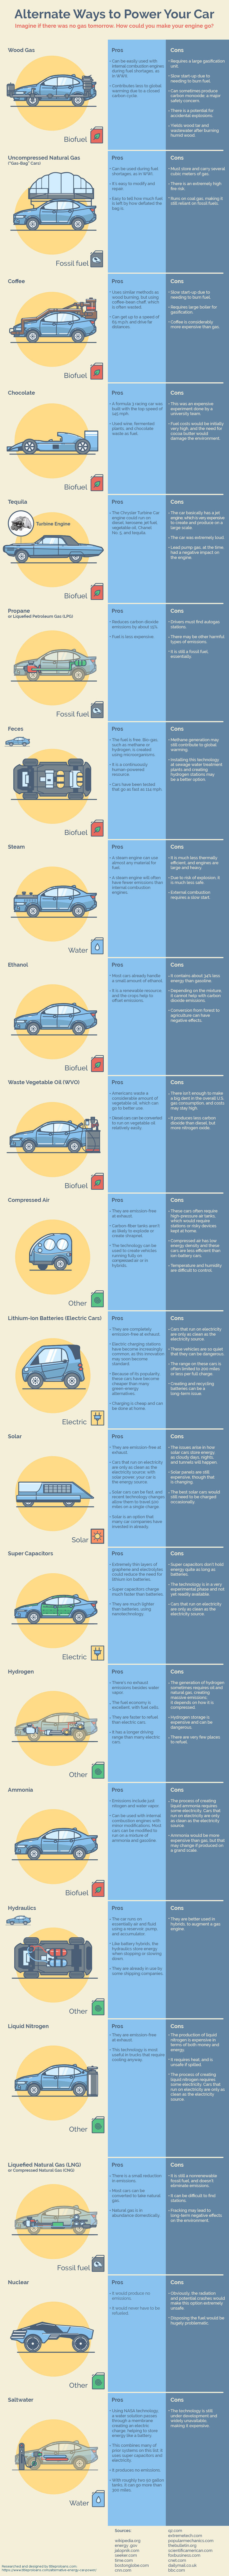 Ways to power your car without gas for when the world ends .... 21 alternate fuels to power your car with, other than gas - some are fossil fuels and others com